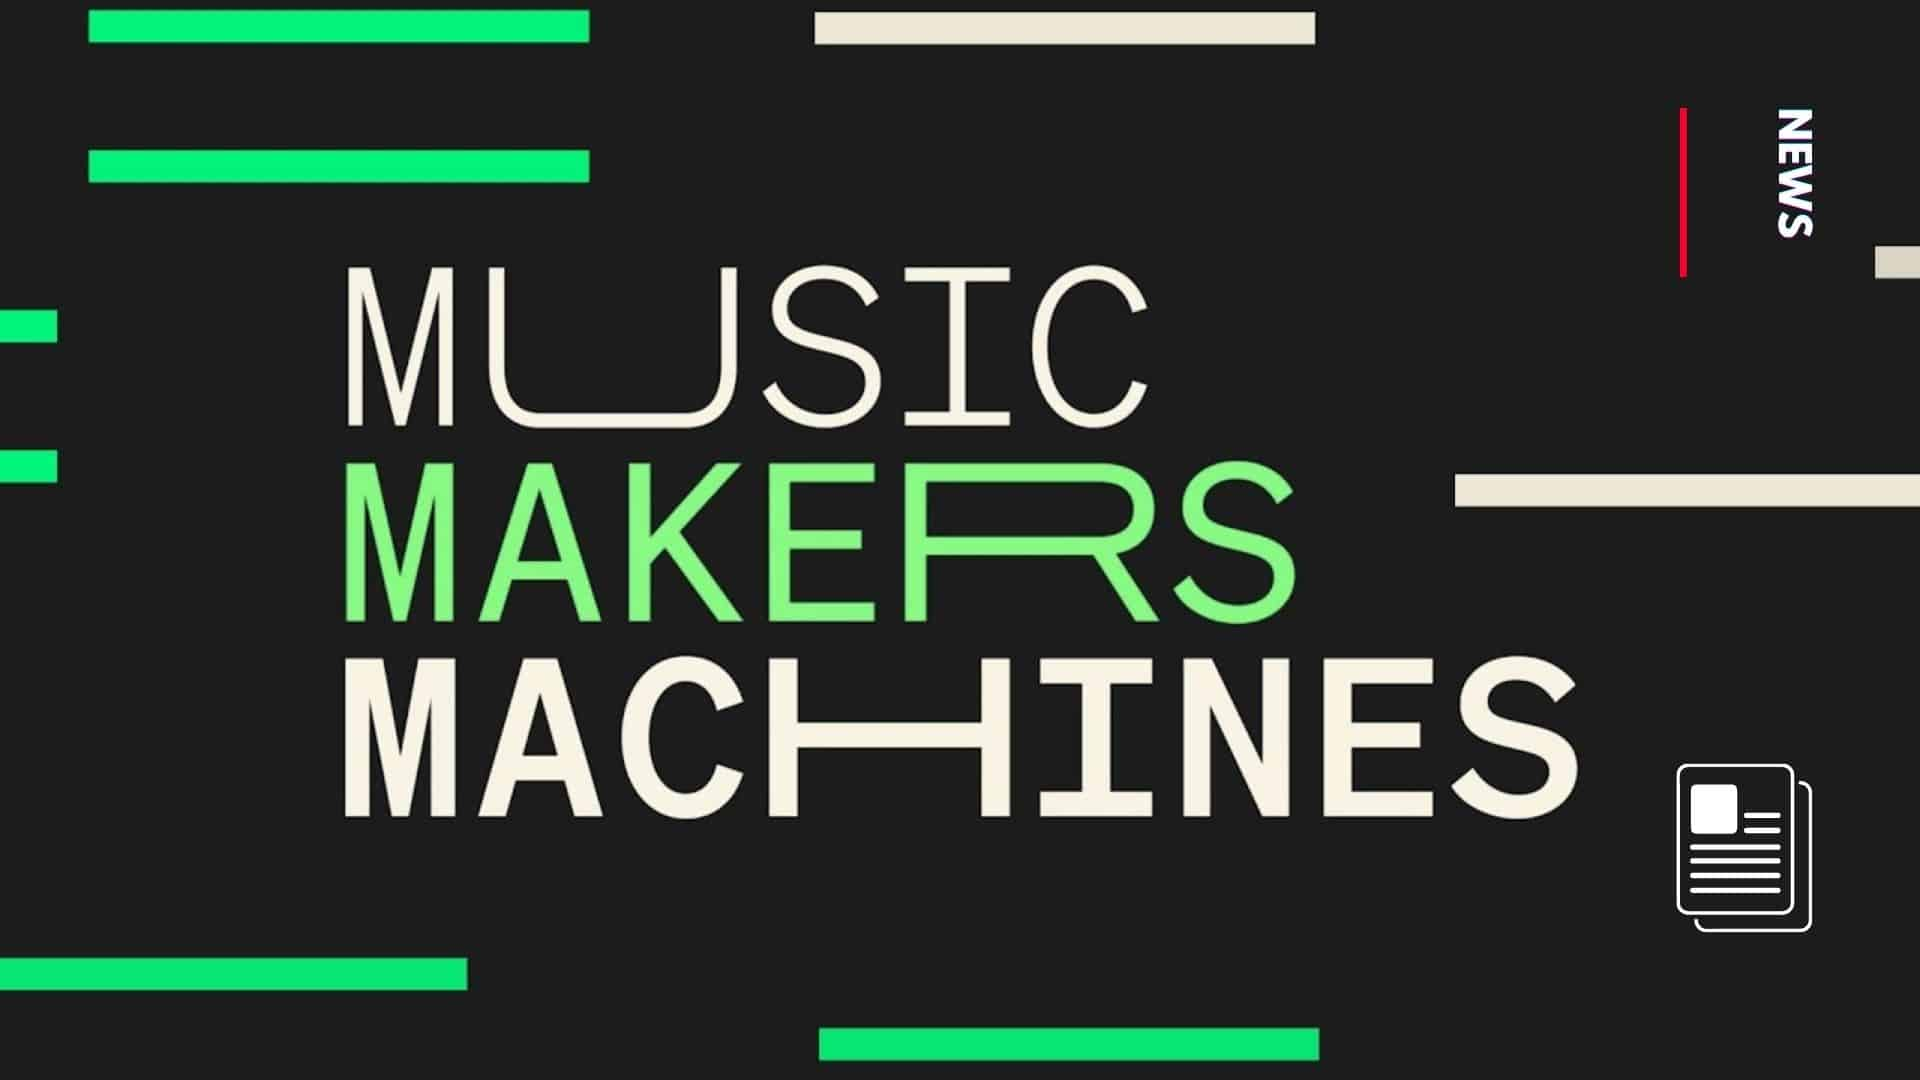 google arts and culture music makers and machines